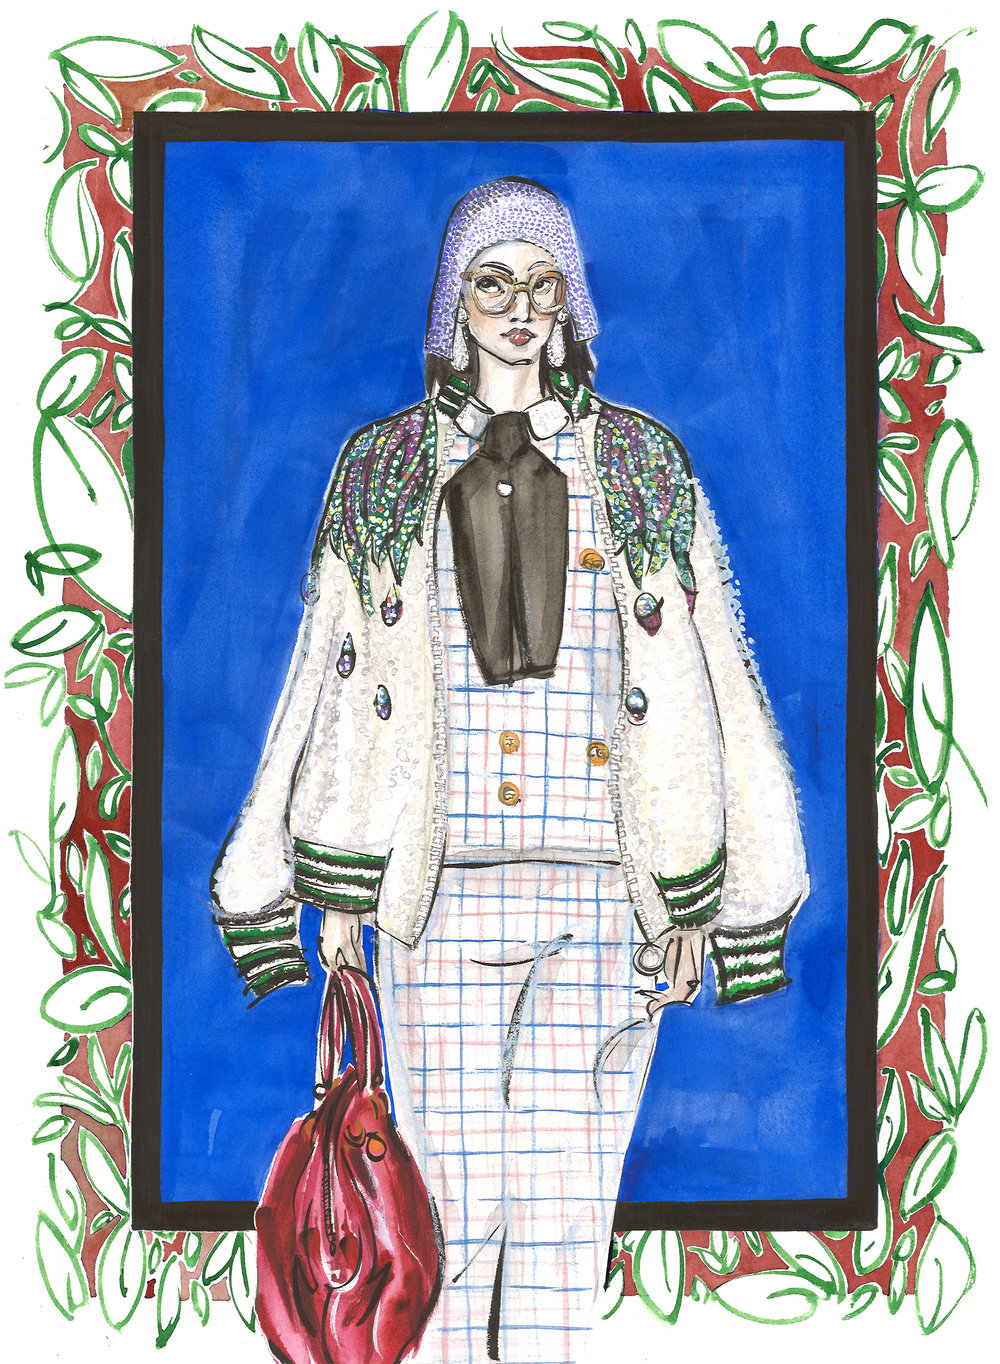 This illustration is based off of a look from Gucci Spring 2018 RTW  collection . The illustration was created on 140 lb Arches hot press watercolor paper with watercolor, gouache, ink, chalk pastels, and pencil.